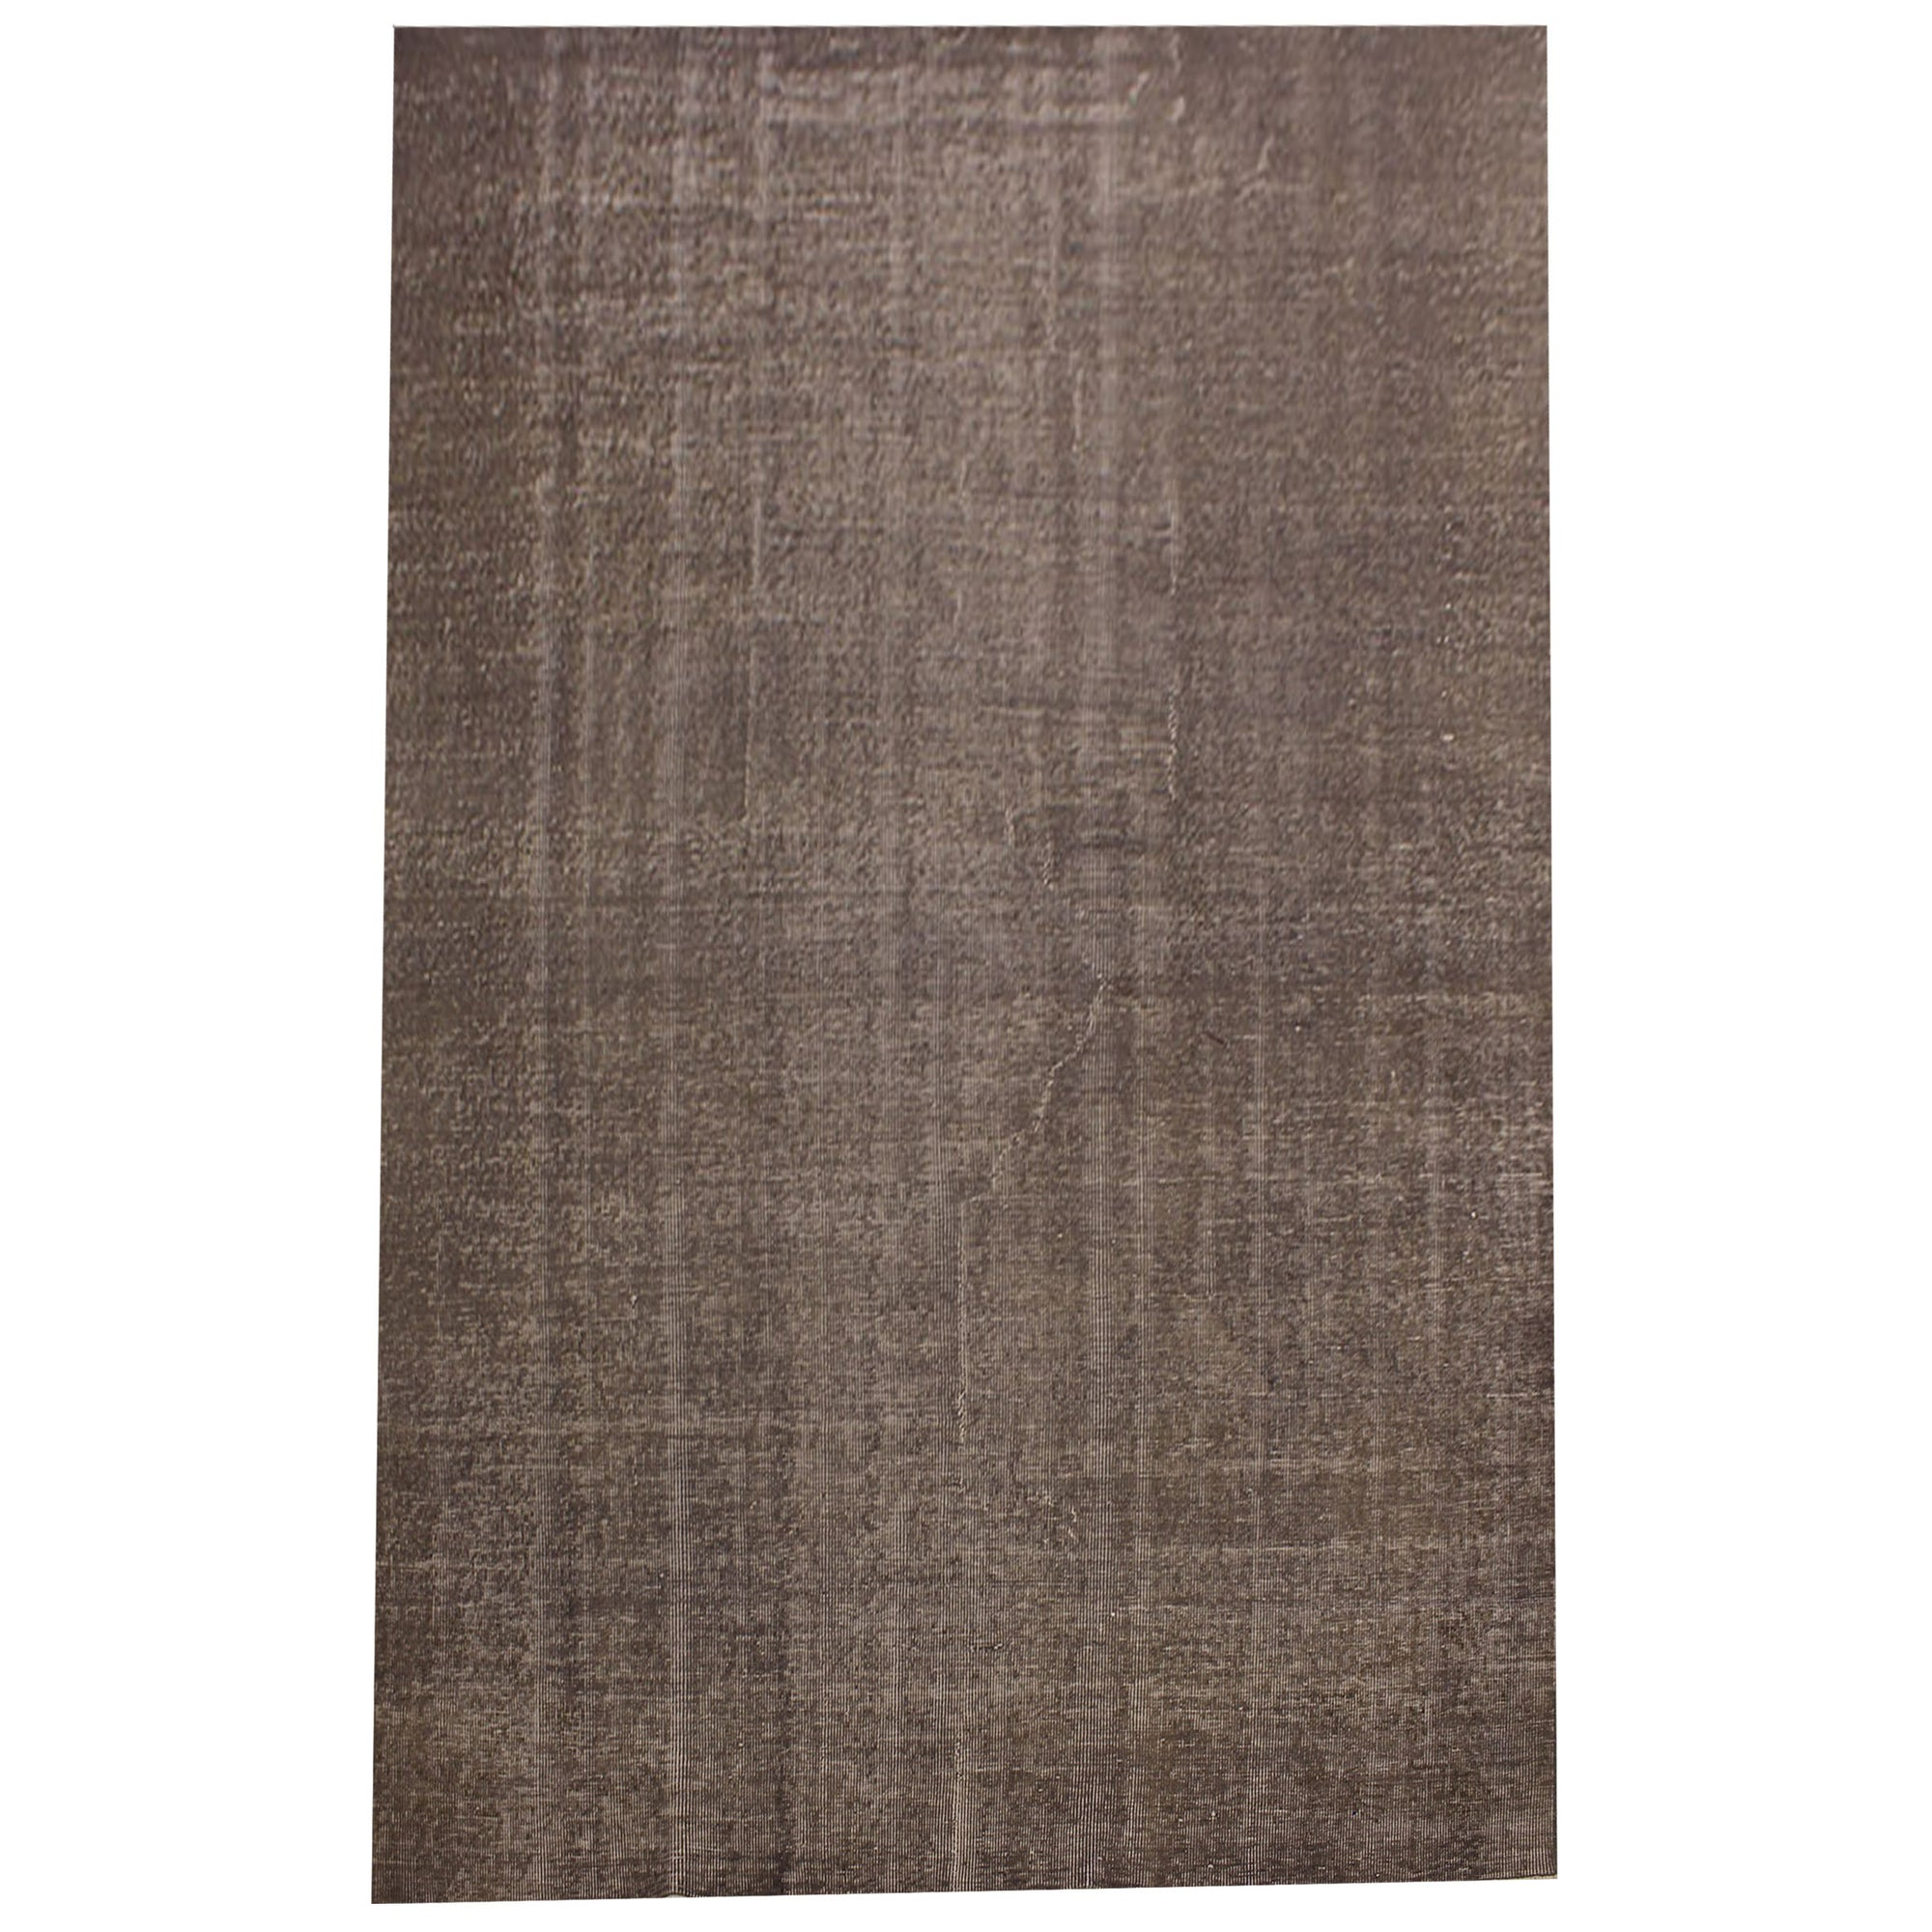 176 X 276Anatolian Hand Knotted Carpet Vintage Style 60N2441 - ebarza